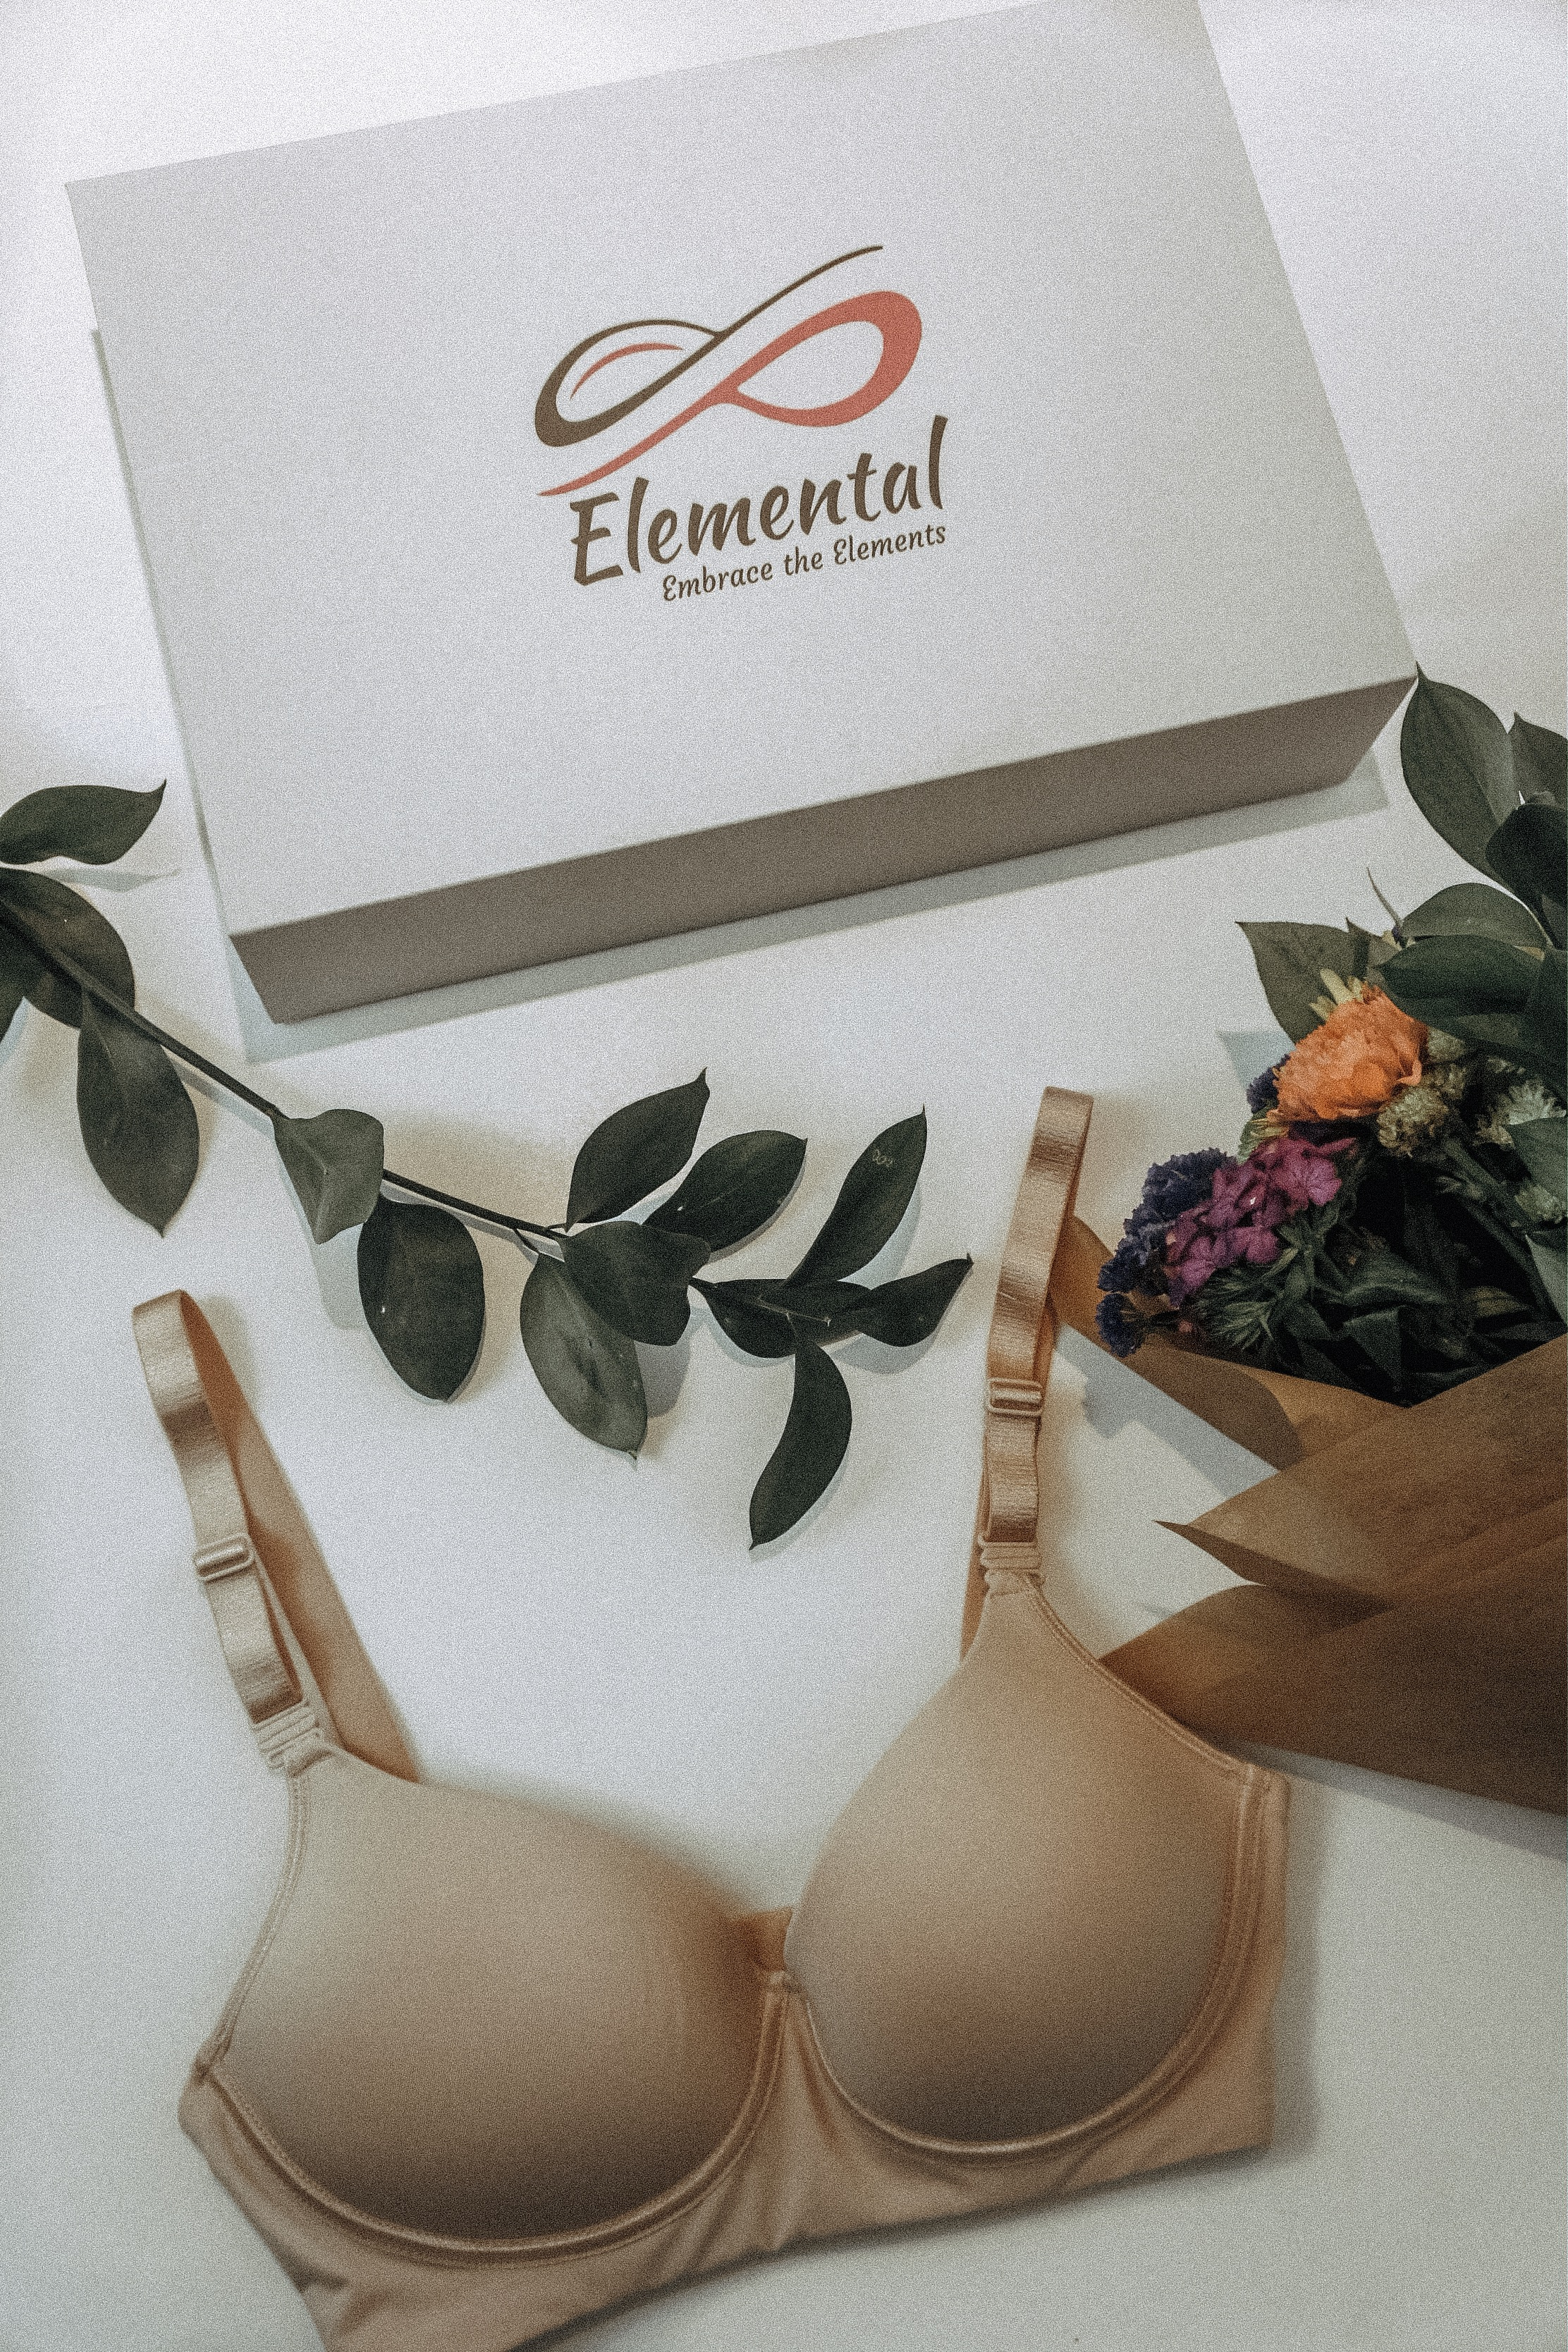 My mom is a cancer survivor and went through a mastectomy and reconstruction. I gifted her a thermal bra made especially for women like here, and I'm sharing all the details in this blog!